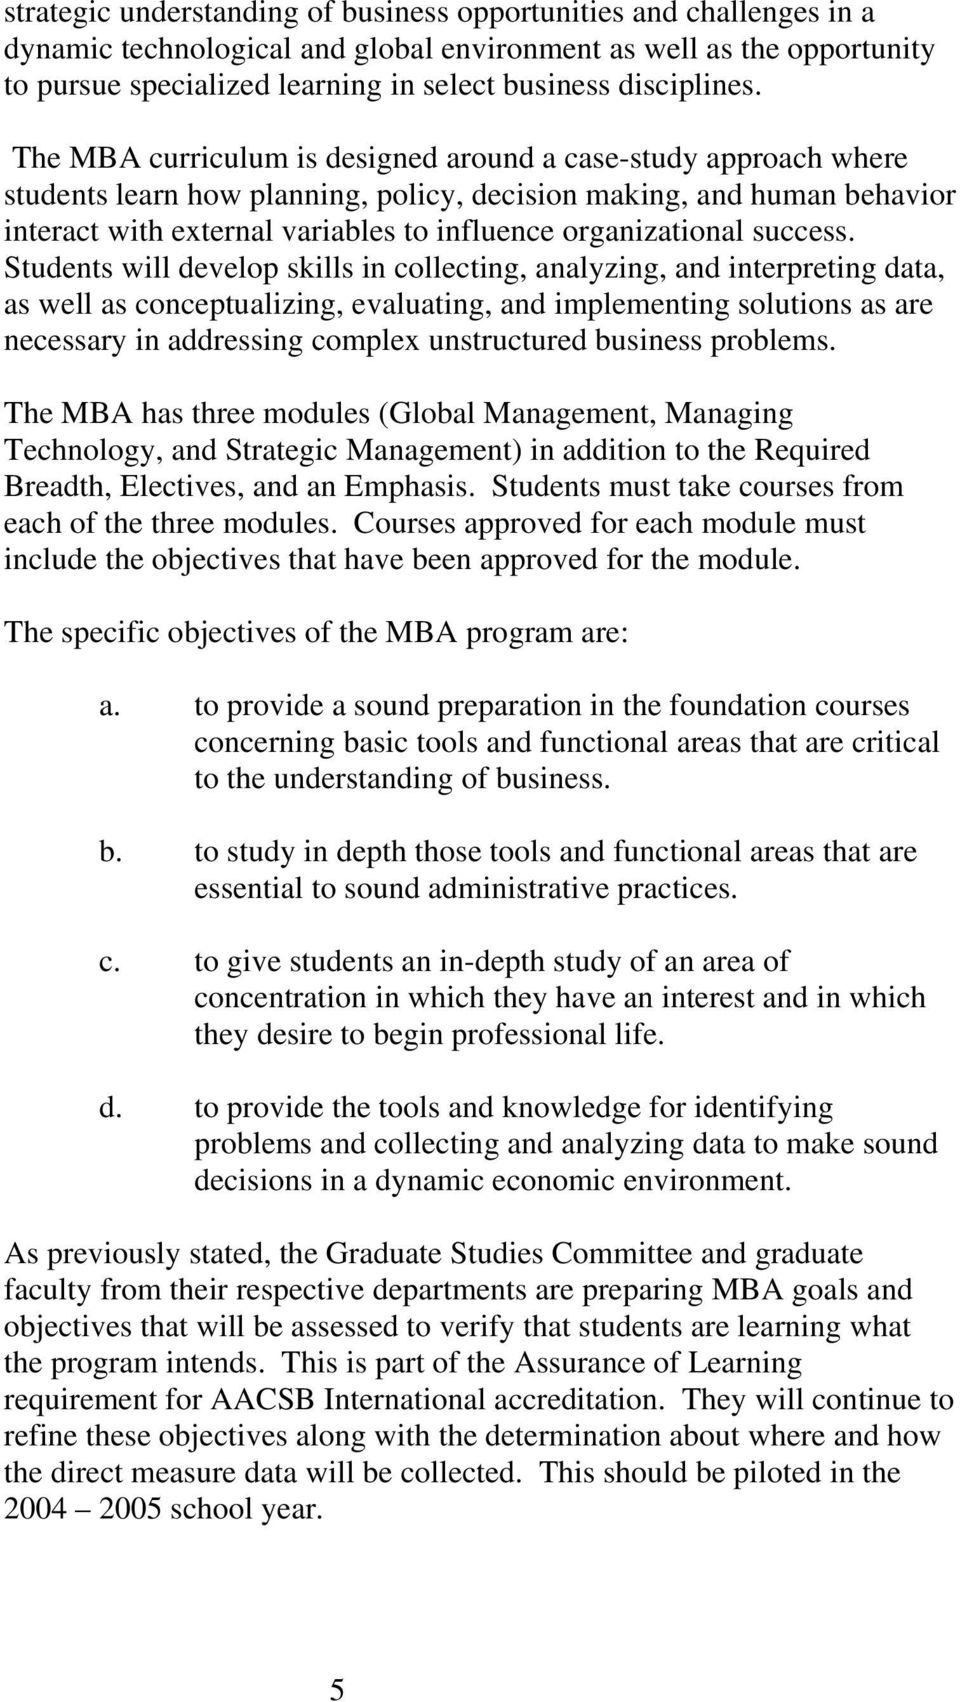 The MBA curriculum is designed around a case-study approach where students learn how planning, policy, decision making, and human behavior interact with external variables to influence organizational